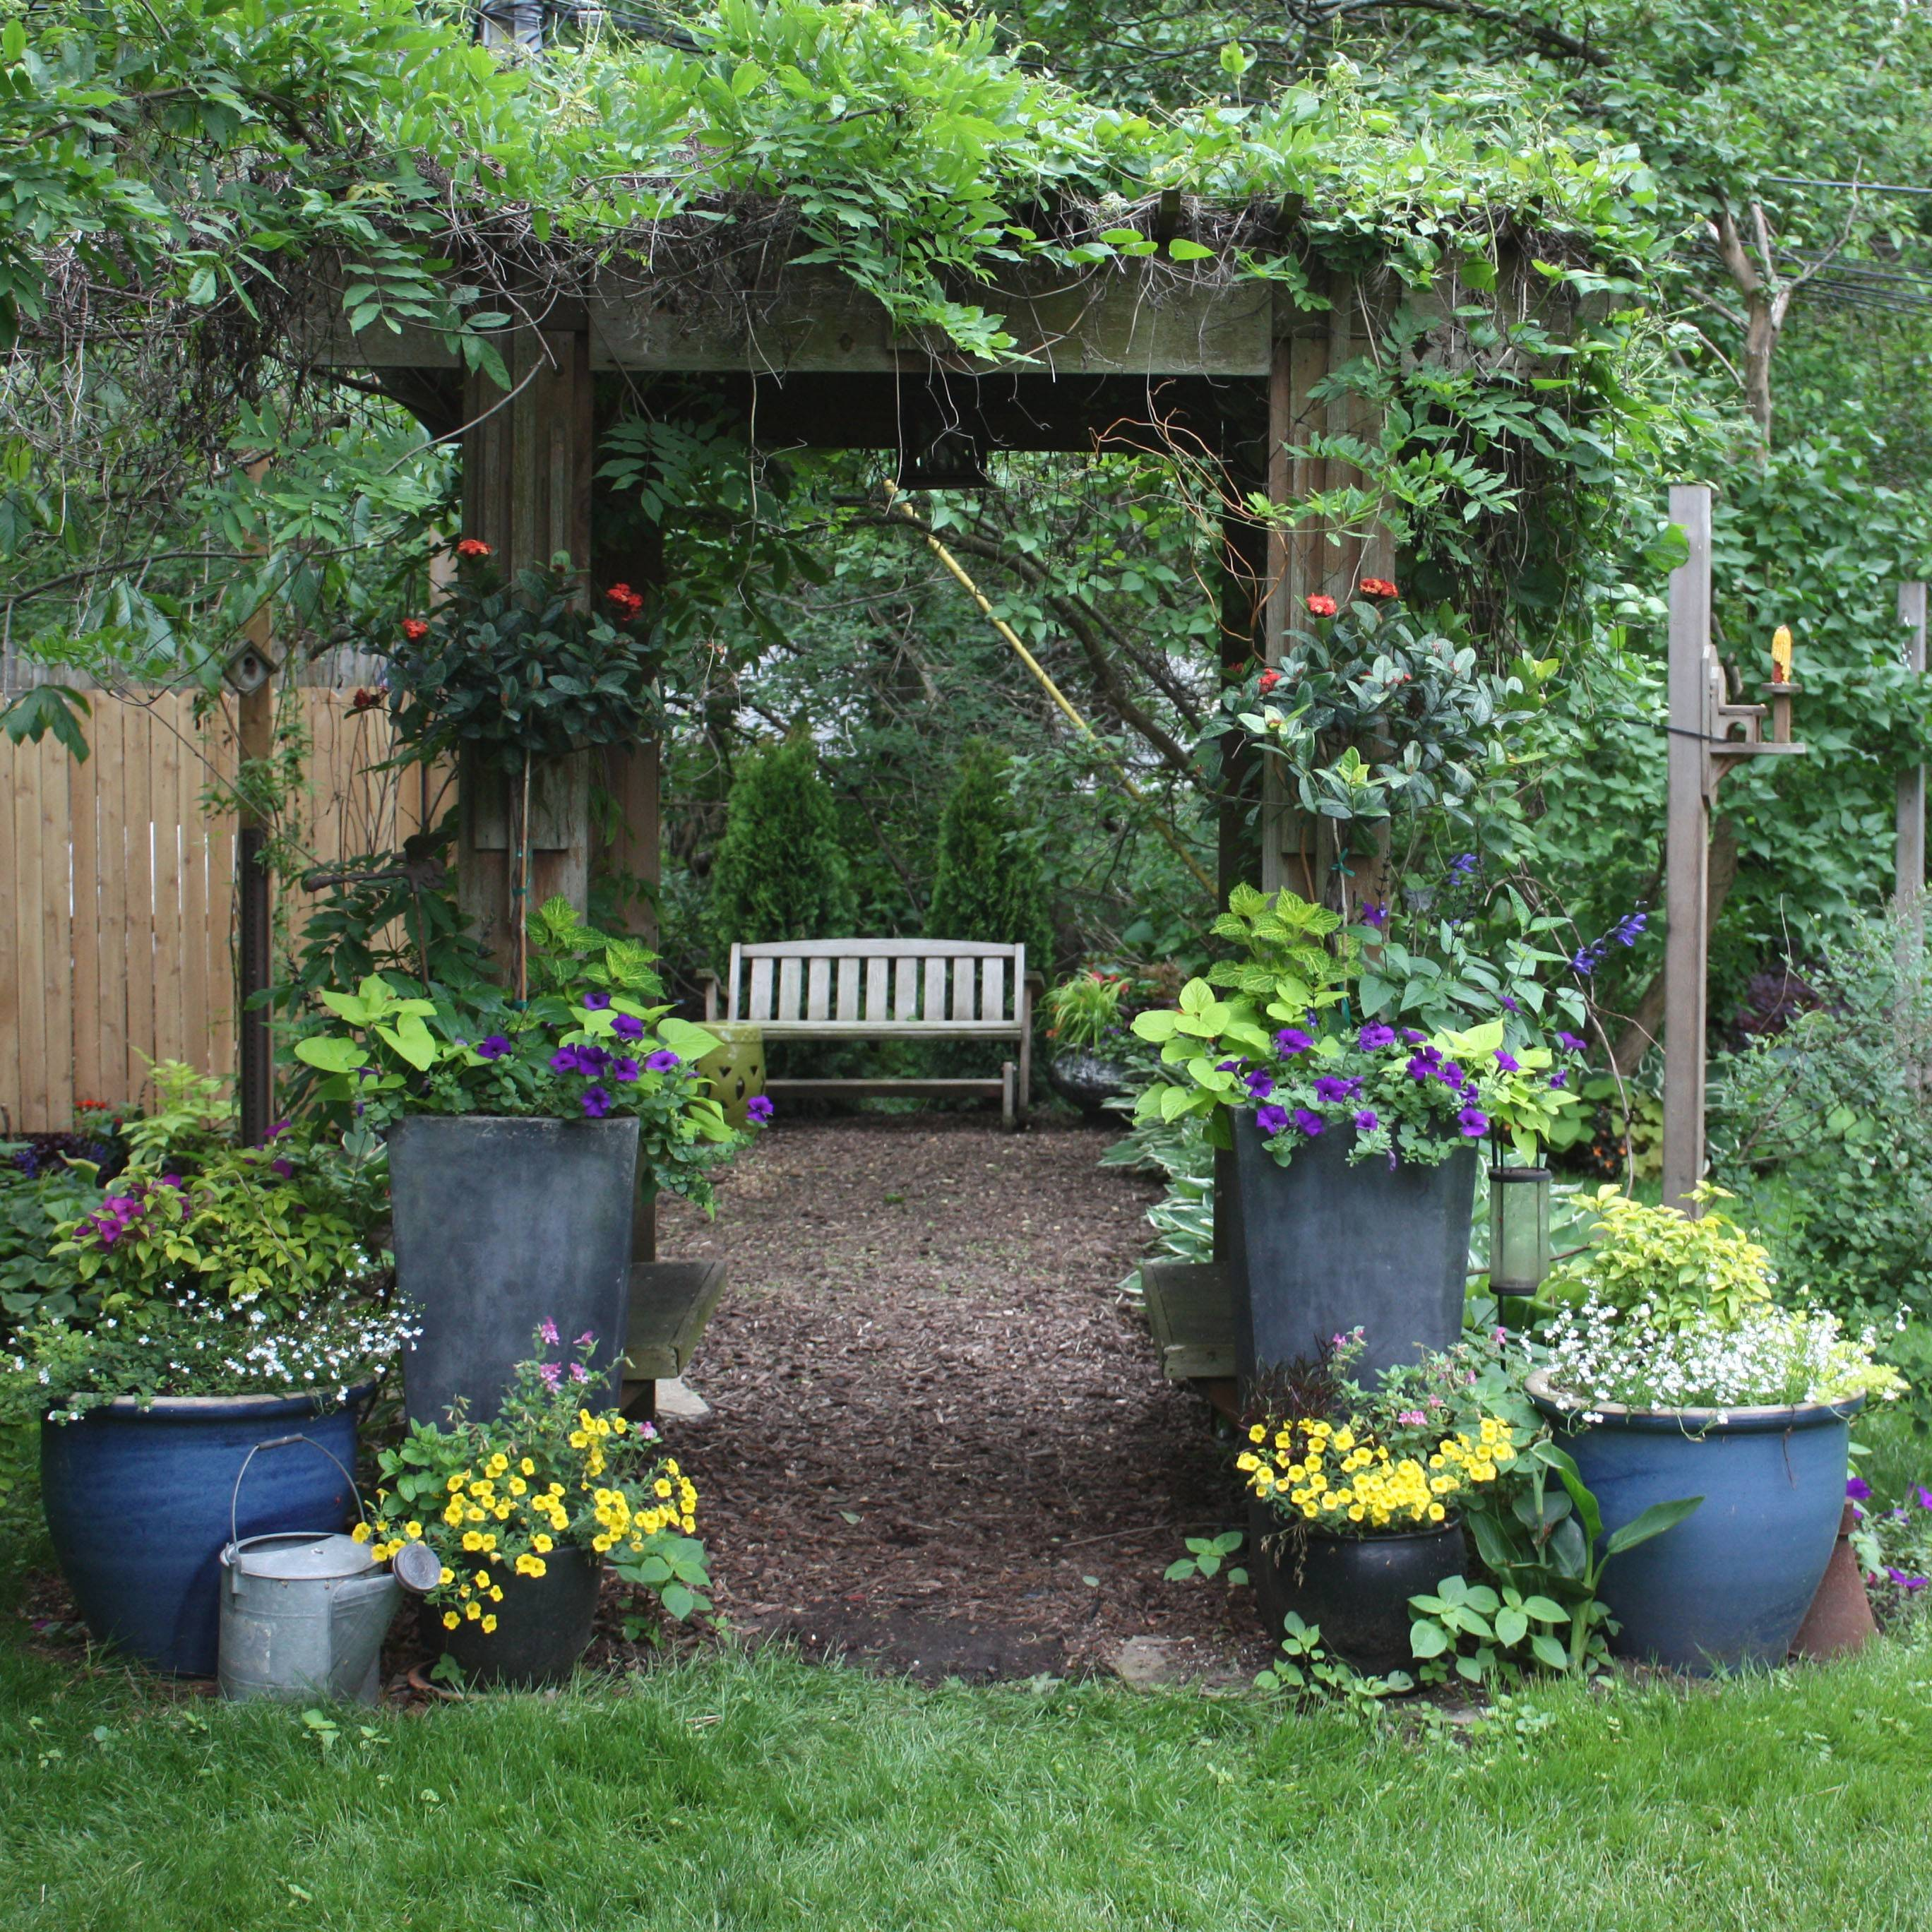 The attractive arbor that Tim Stewart built for their garden encloses a parallel pair of seats. Across the top twine autumn mist clematis and purple wisteria as pots of colorful annuals adorn the entrance.